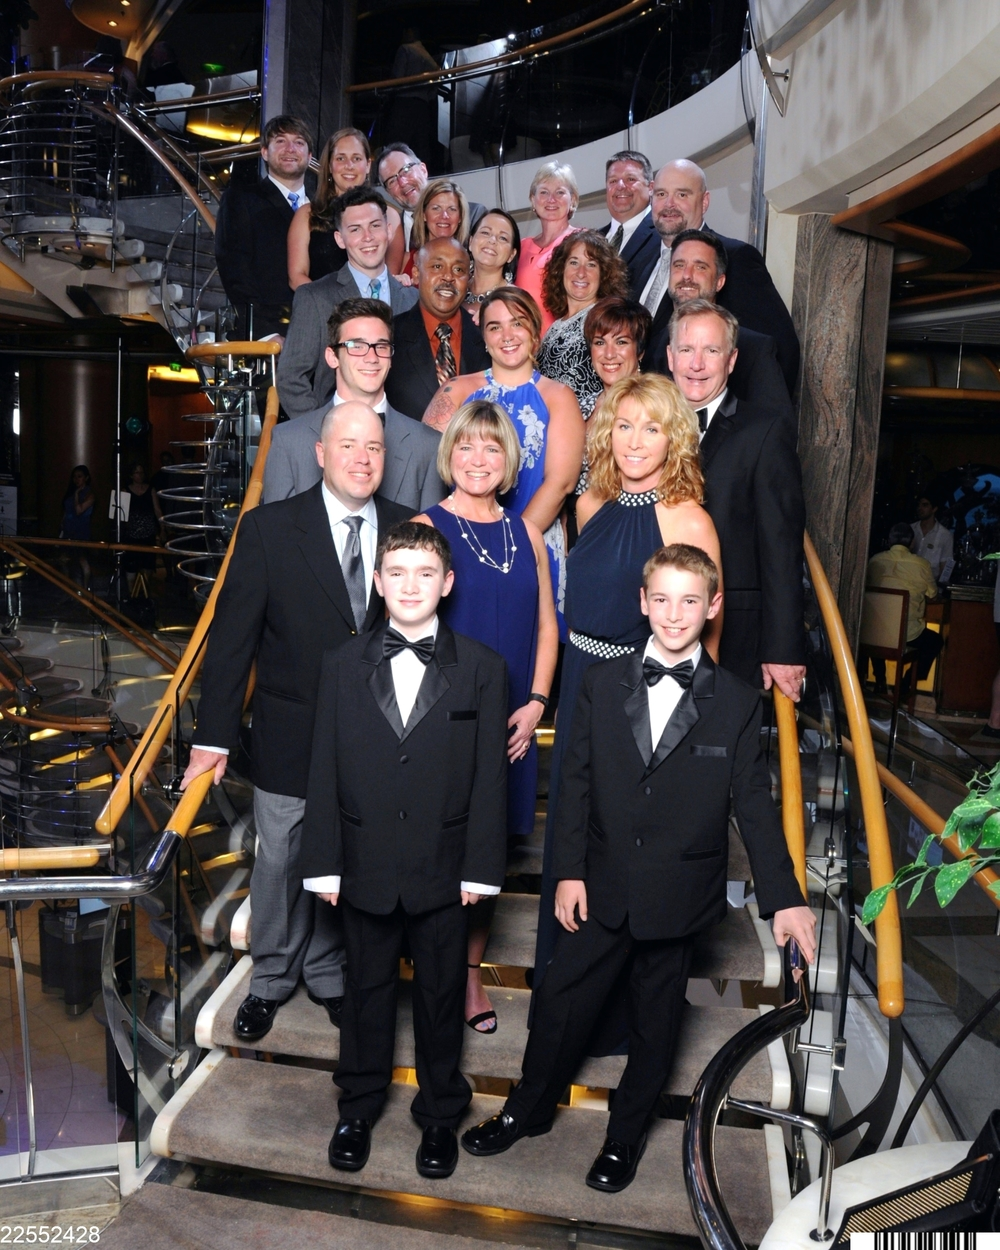 And here is the whole cruise crew, dressed up for fancy night!